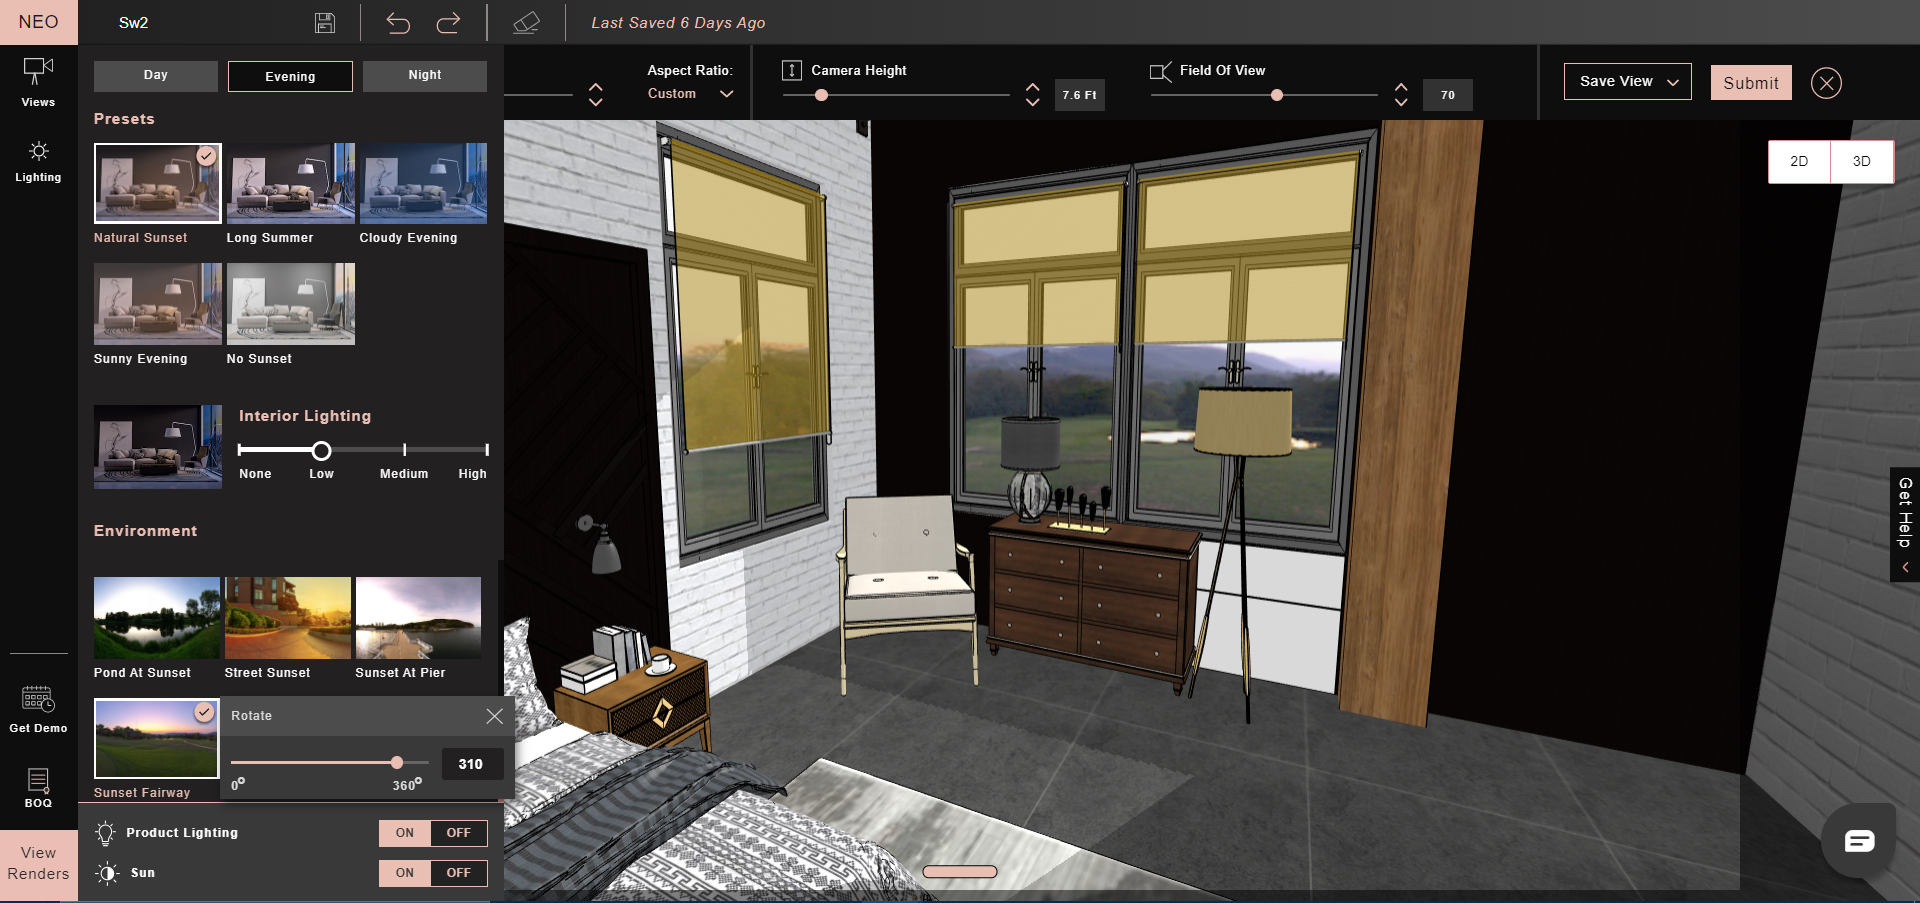 Simple Auto Lighting controls – get the perfect lighting for your render with a few clicks